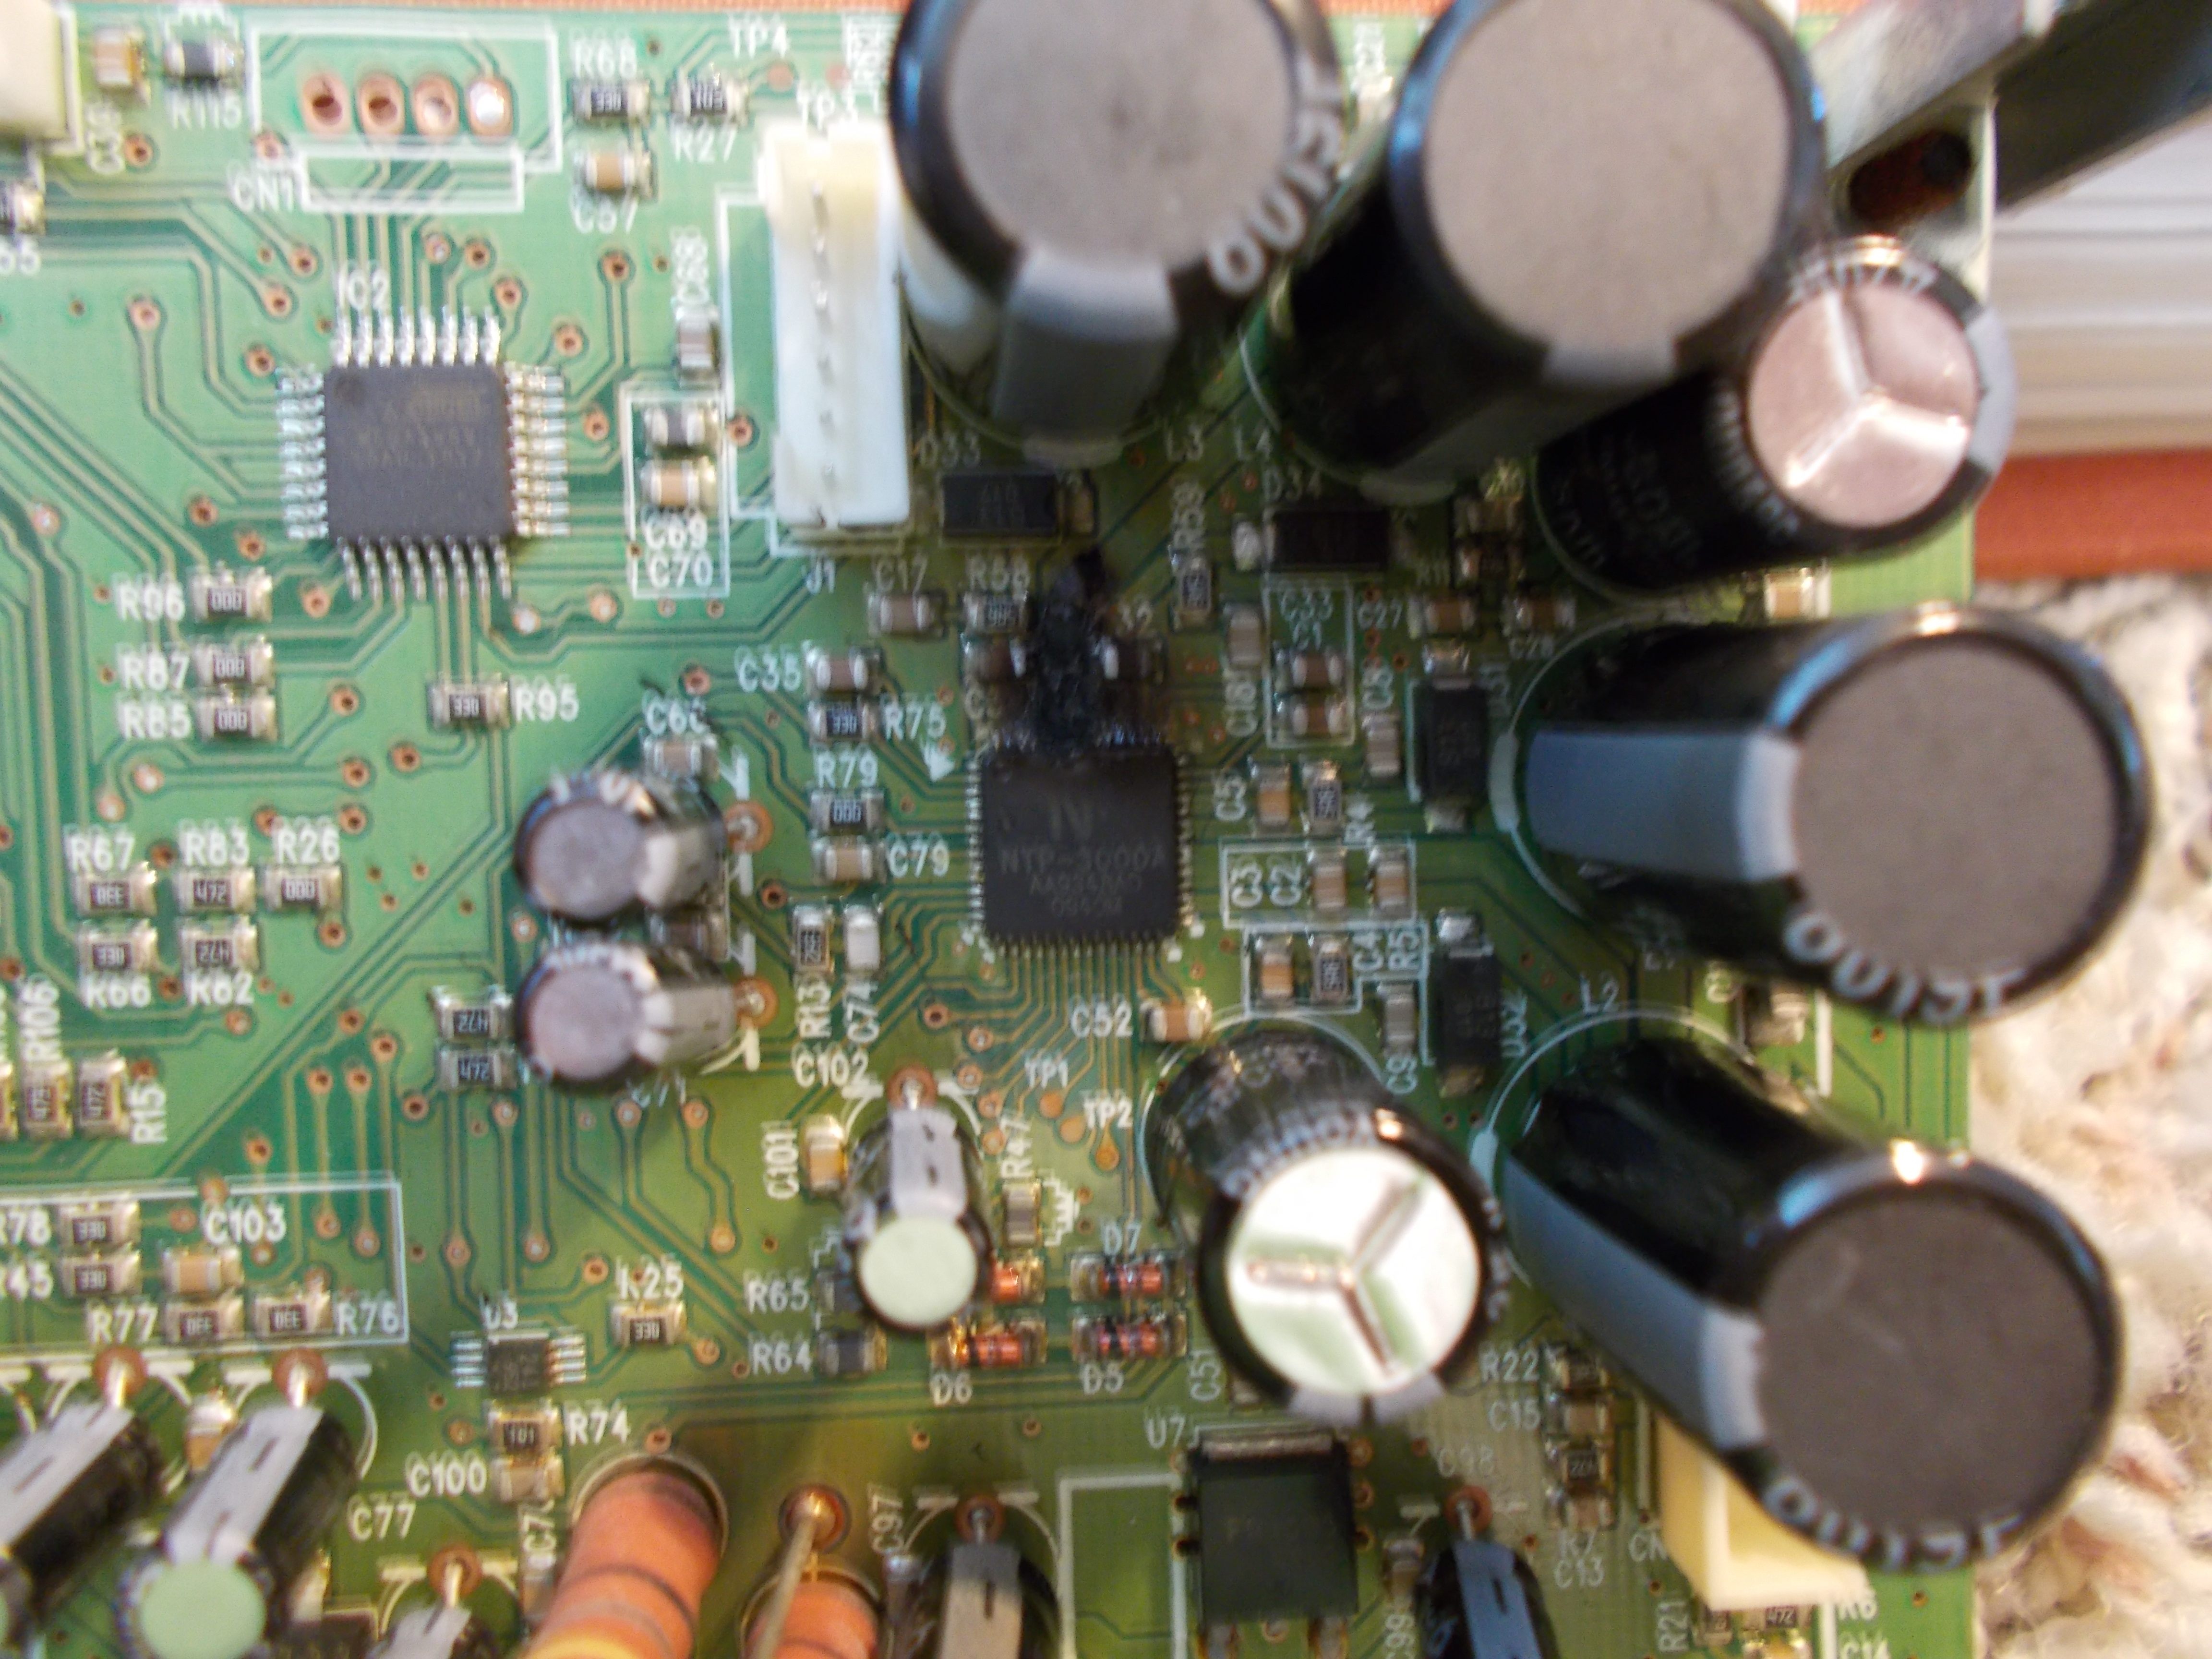 Can I Get A Replacement Circuit Board For My Surroundbar Sda Polk Motherboard Components Find Dscn0403